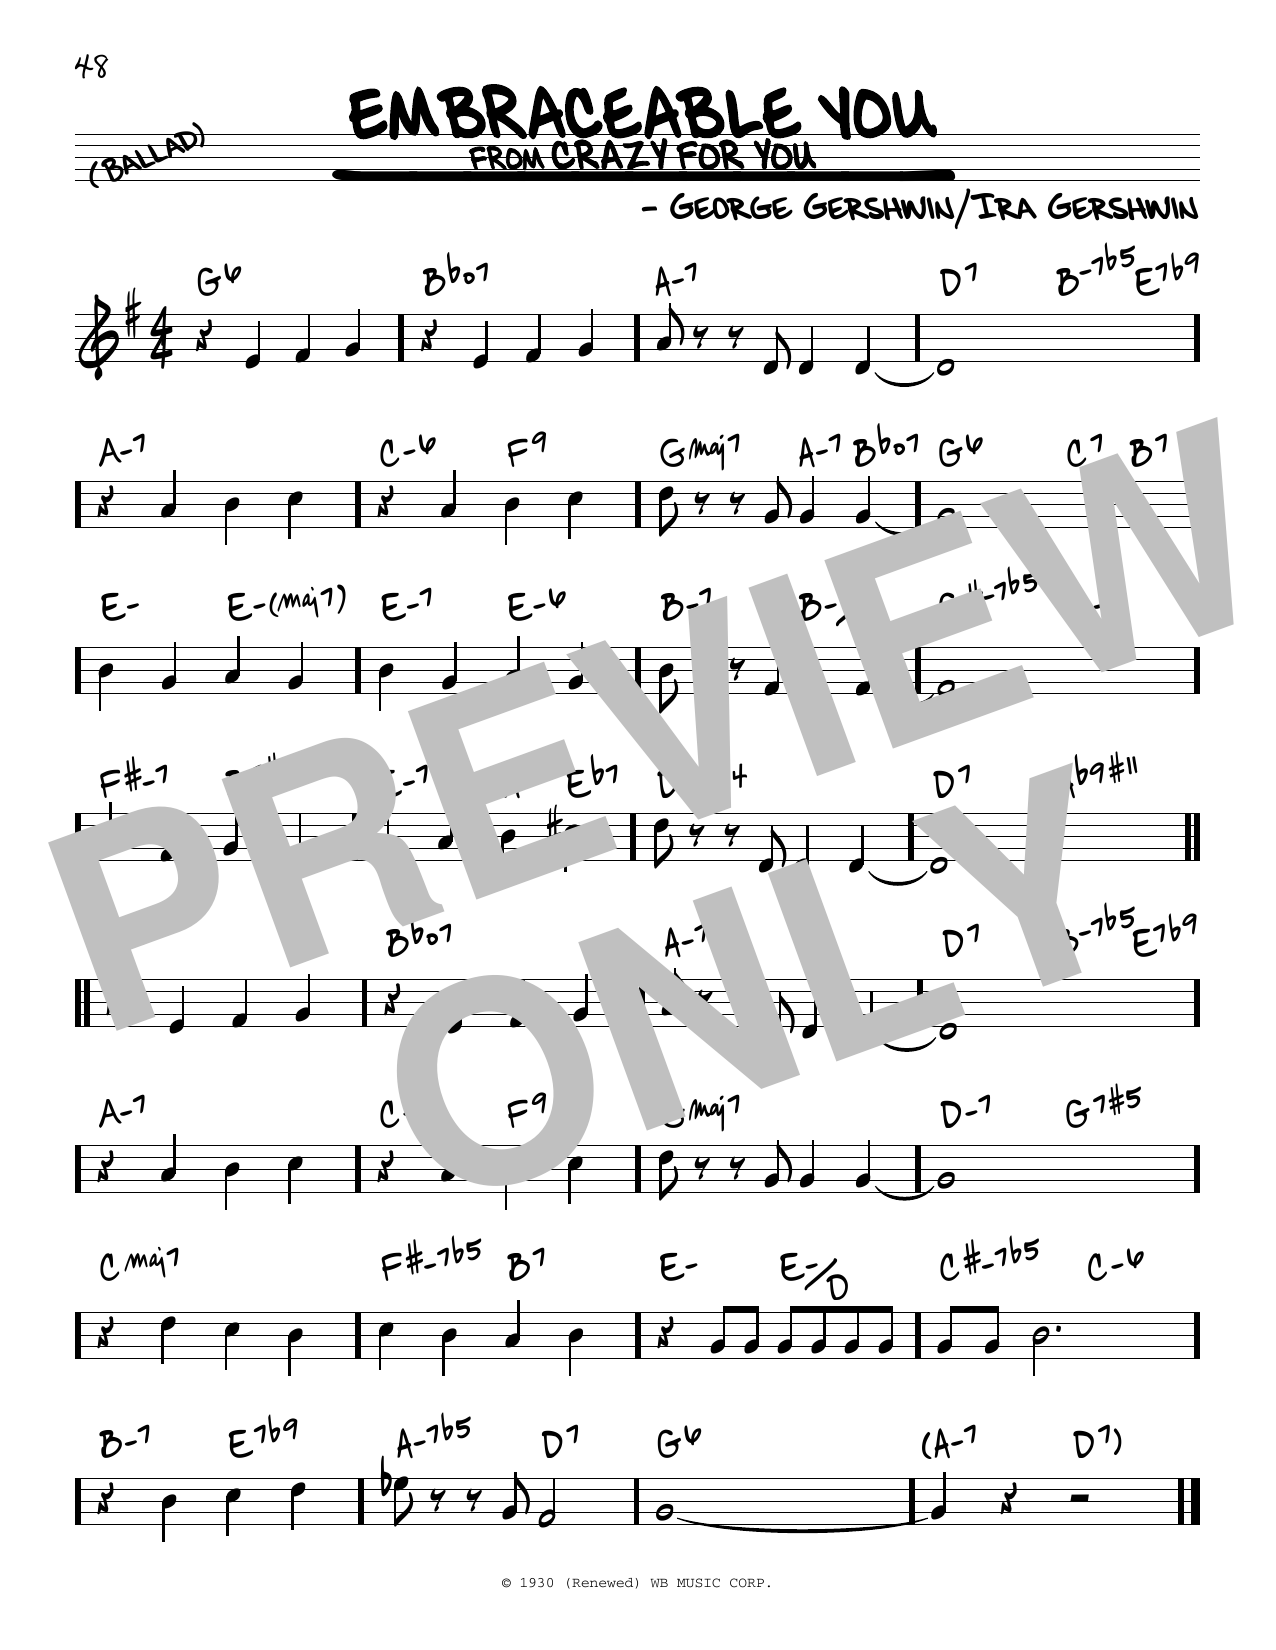 George Gershwin Embraceable You sheet music notes and chords. Download Printable PDF.